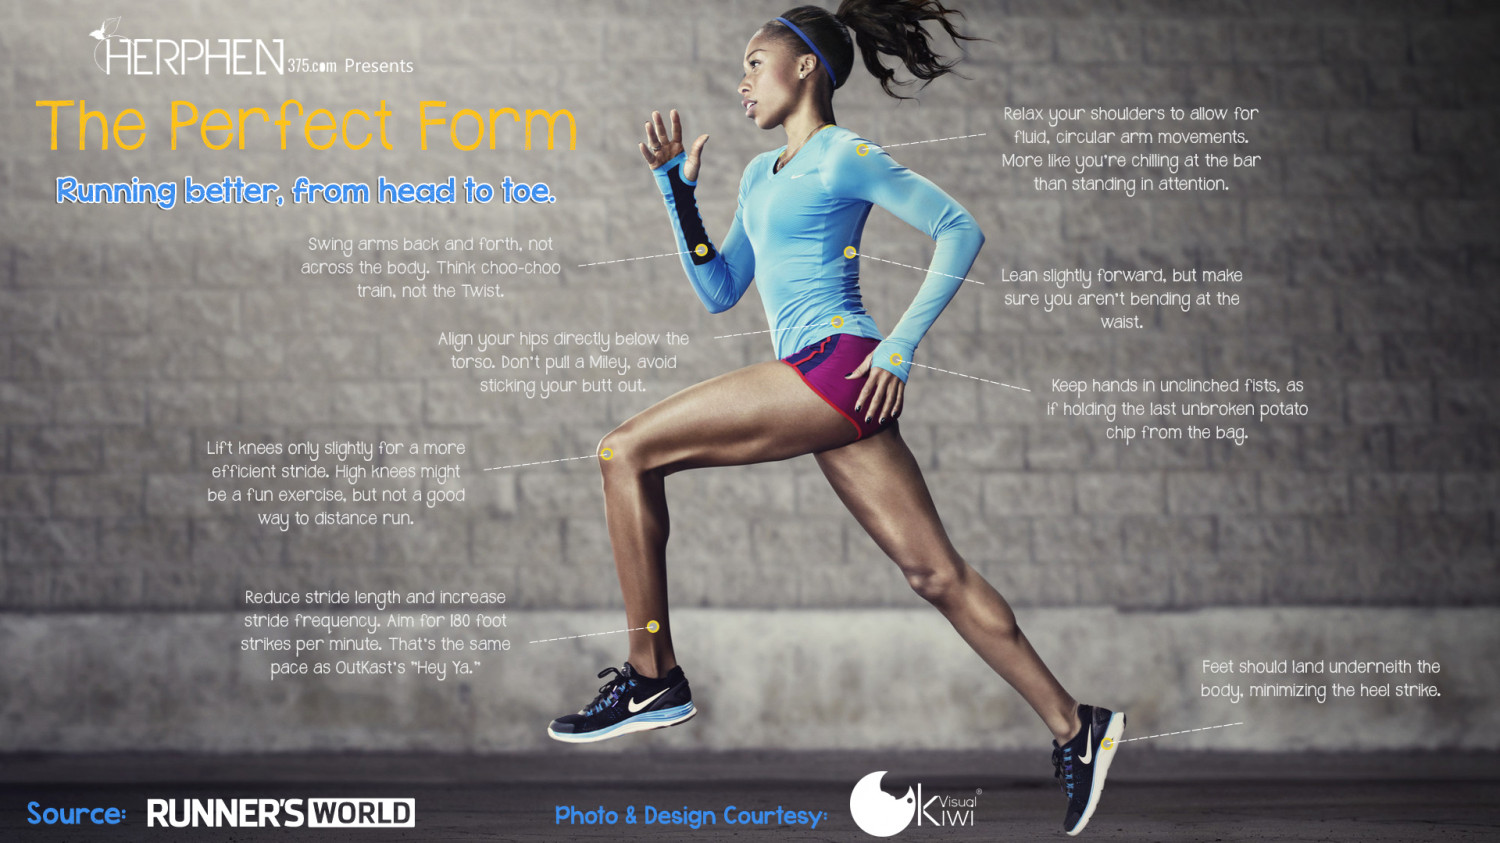 The Perfect Form: Running Better, from head to Toe Infographic